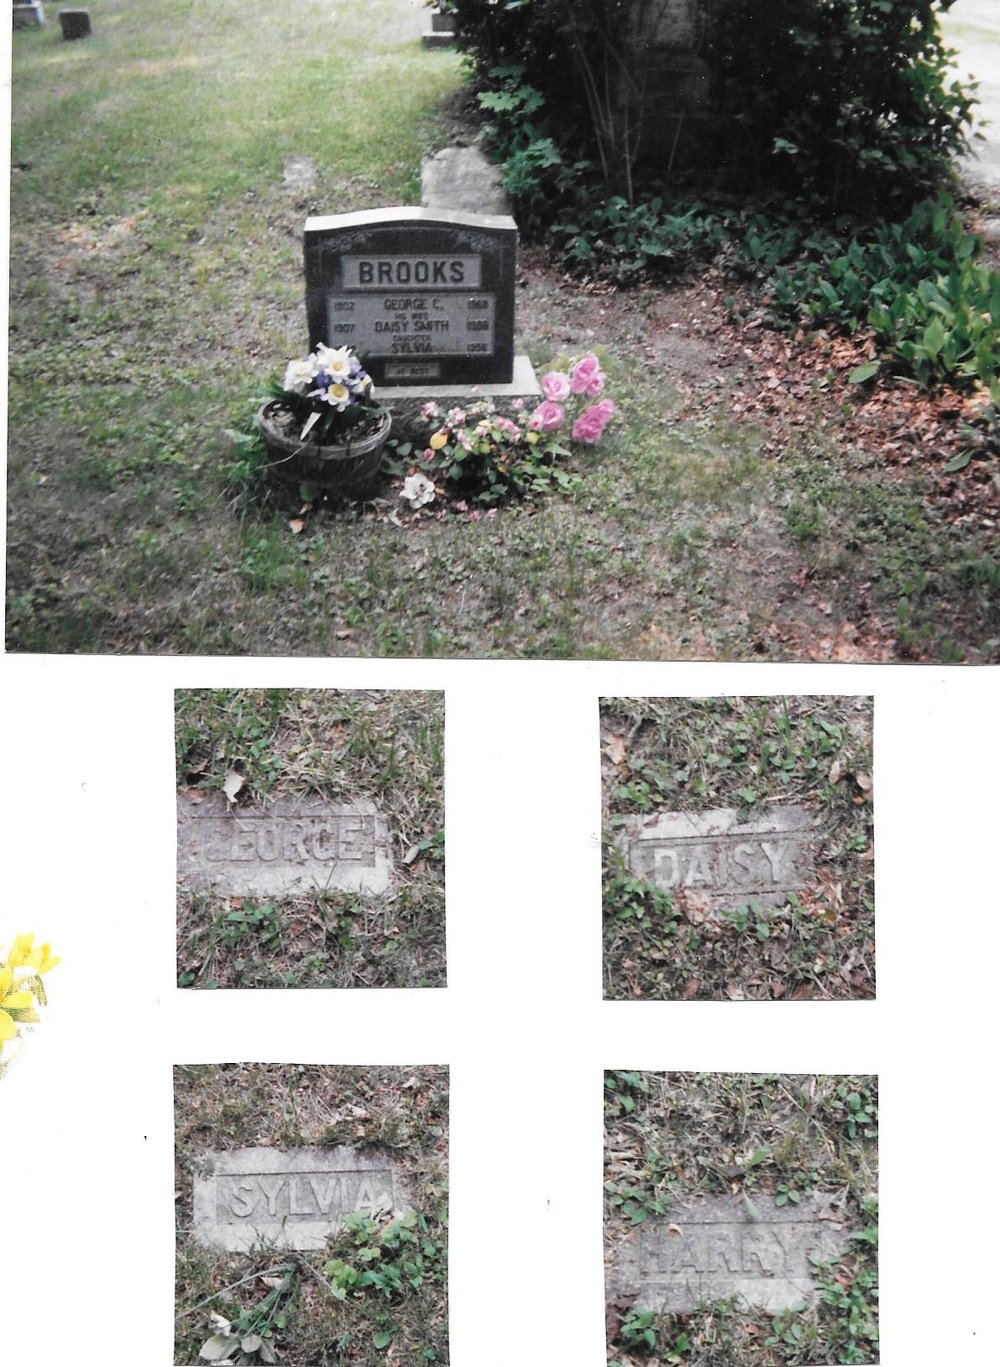 Brooks Family Gravestone with 4  footstones, George, Daisy, Sylvia